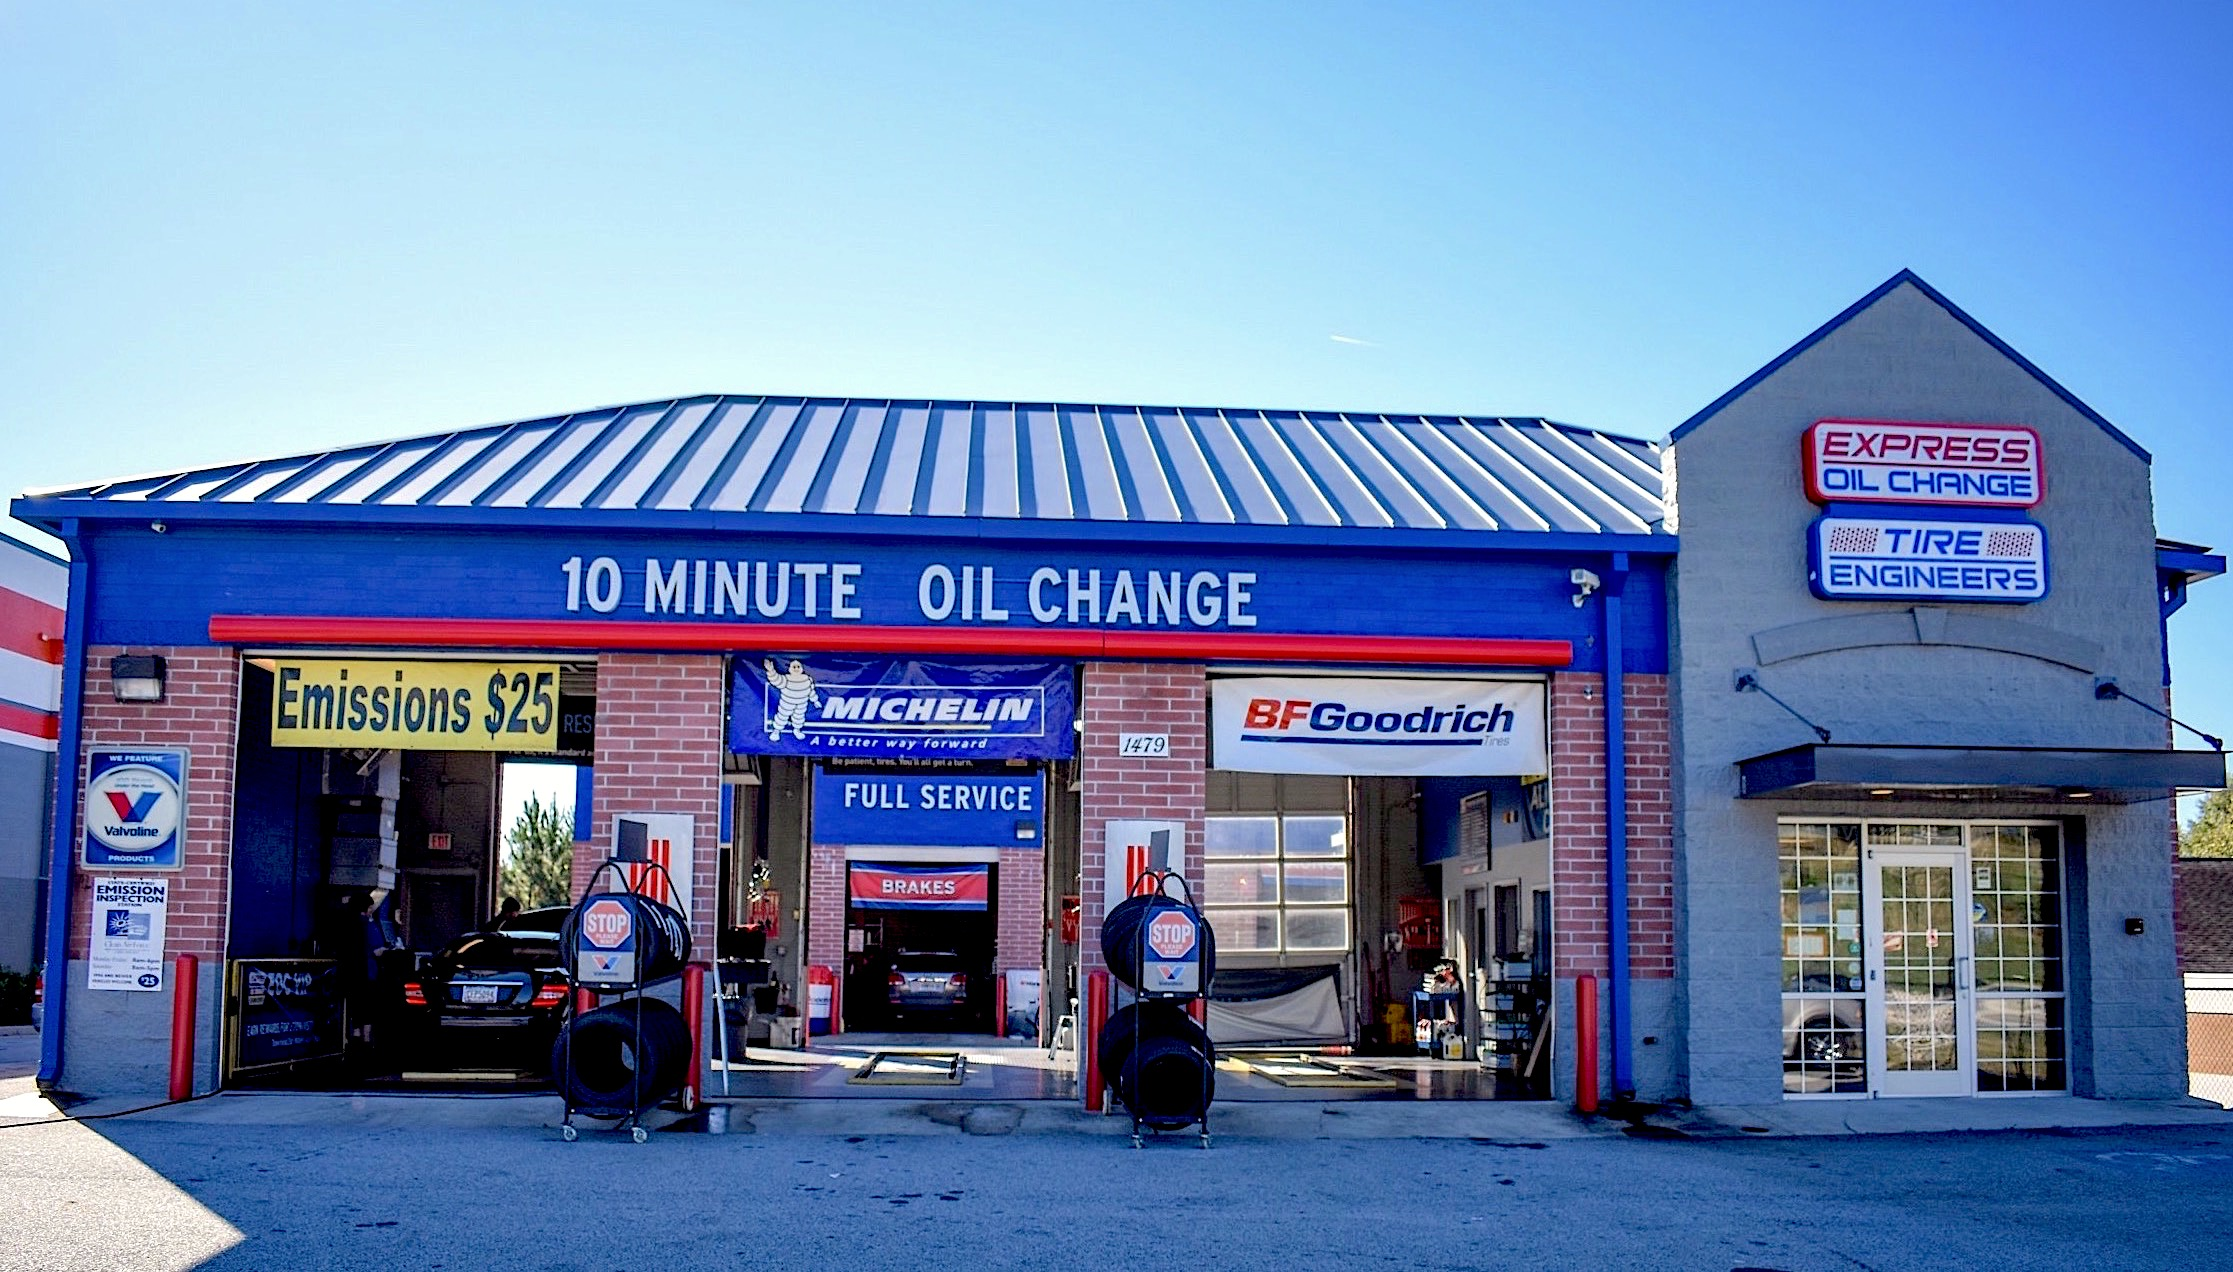 Express Oil Change & Tire Engineers Stockbridge, GA - Hudson Bridge Road store